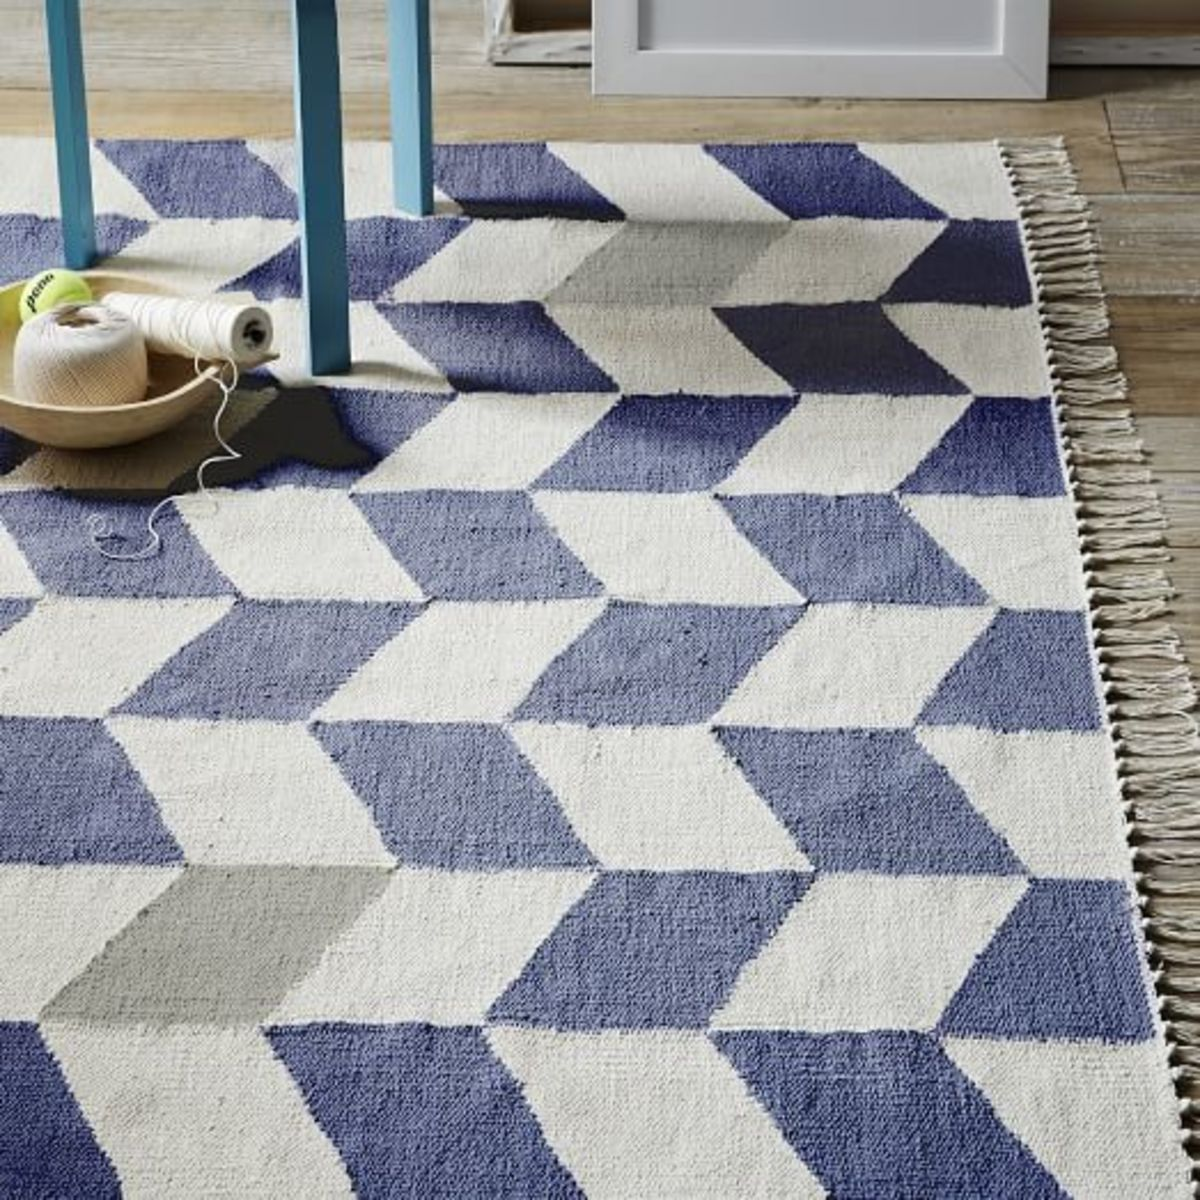 Clever Diy Rug Ideas